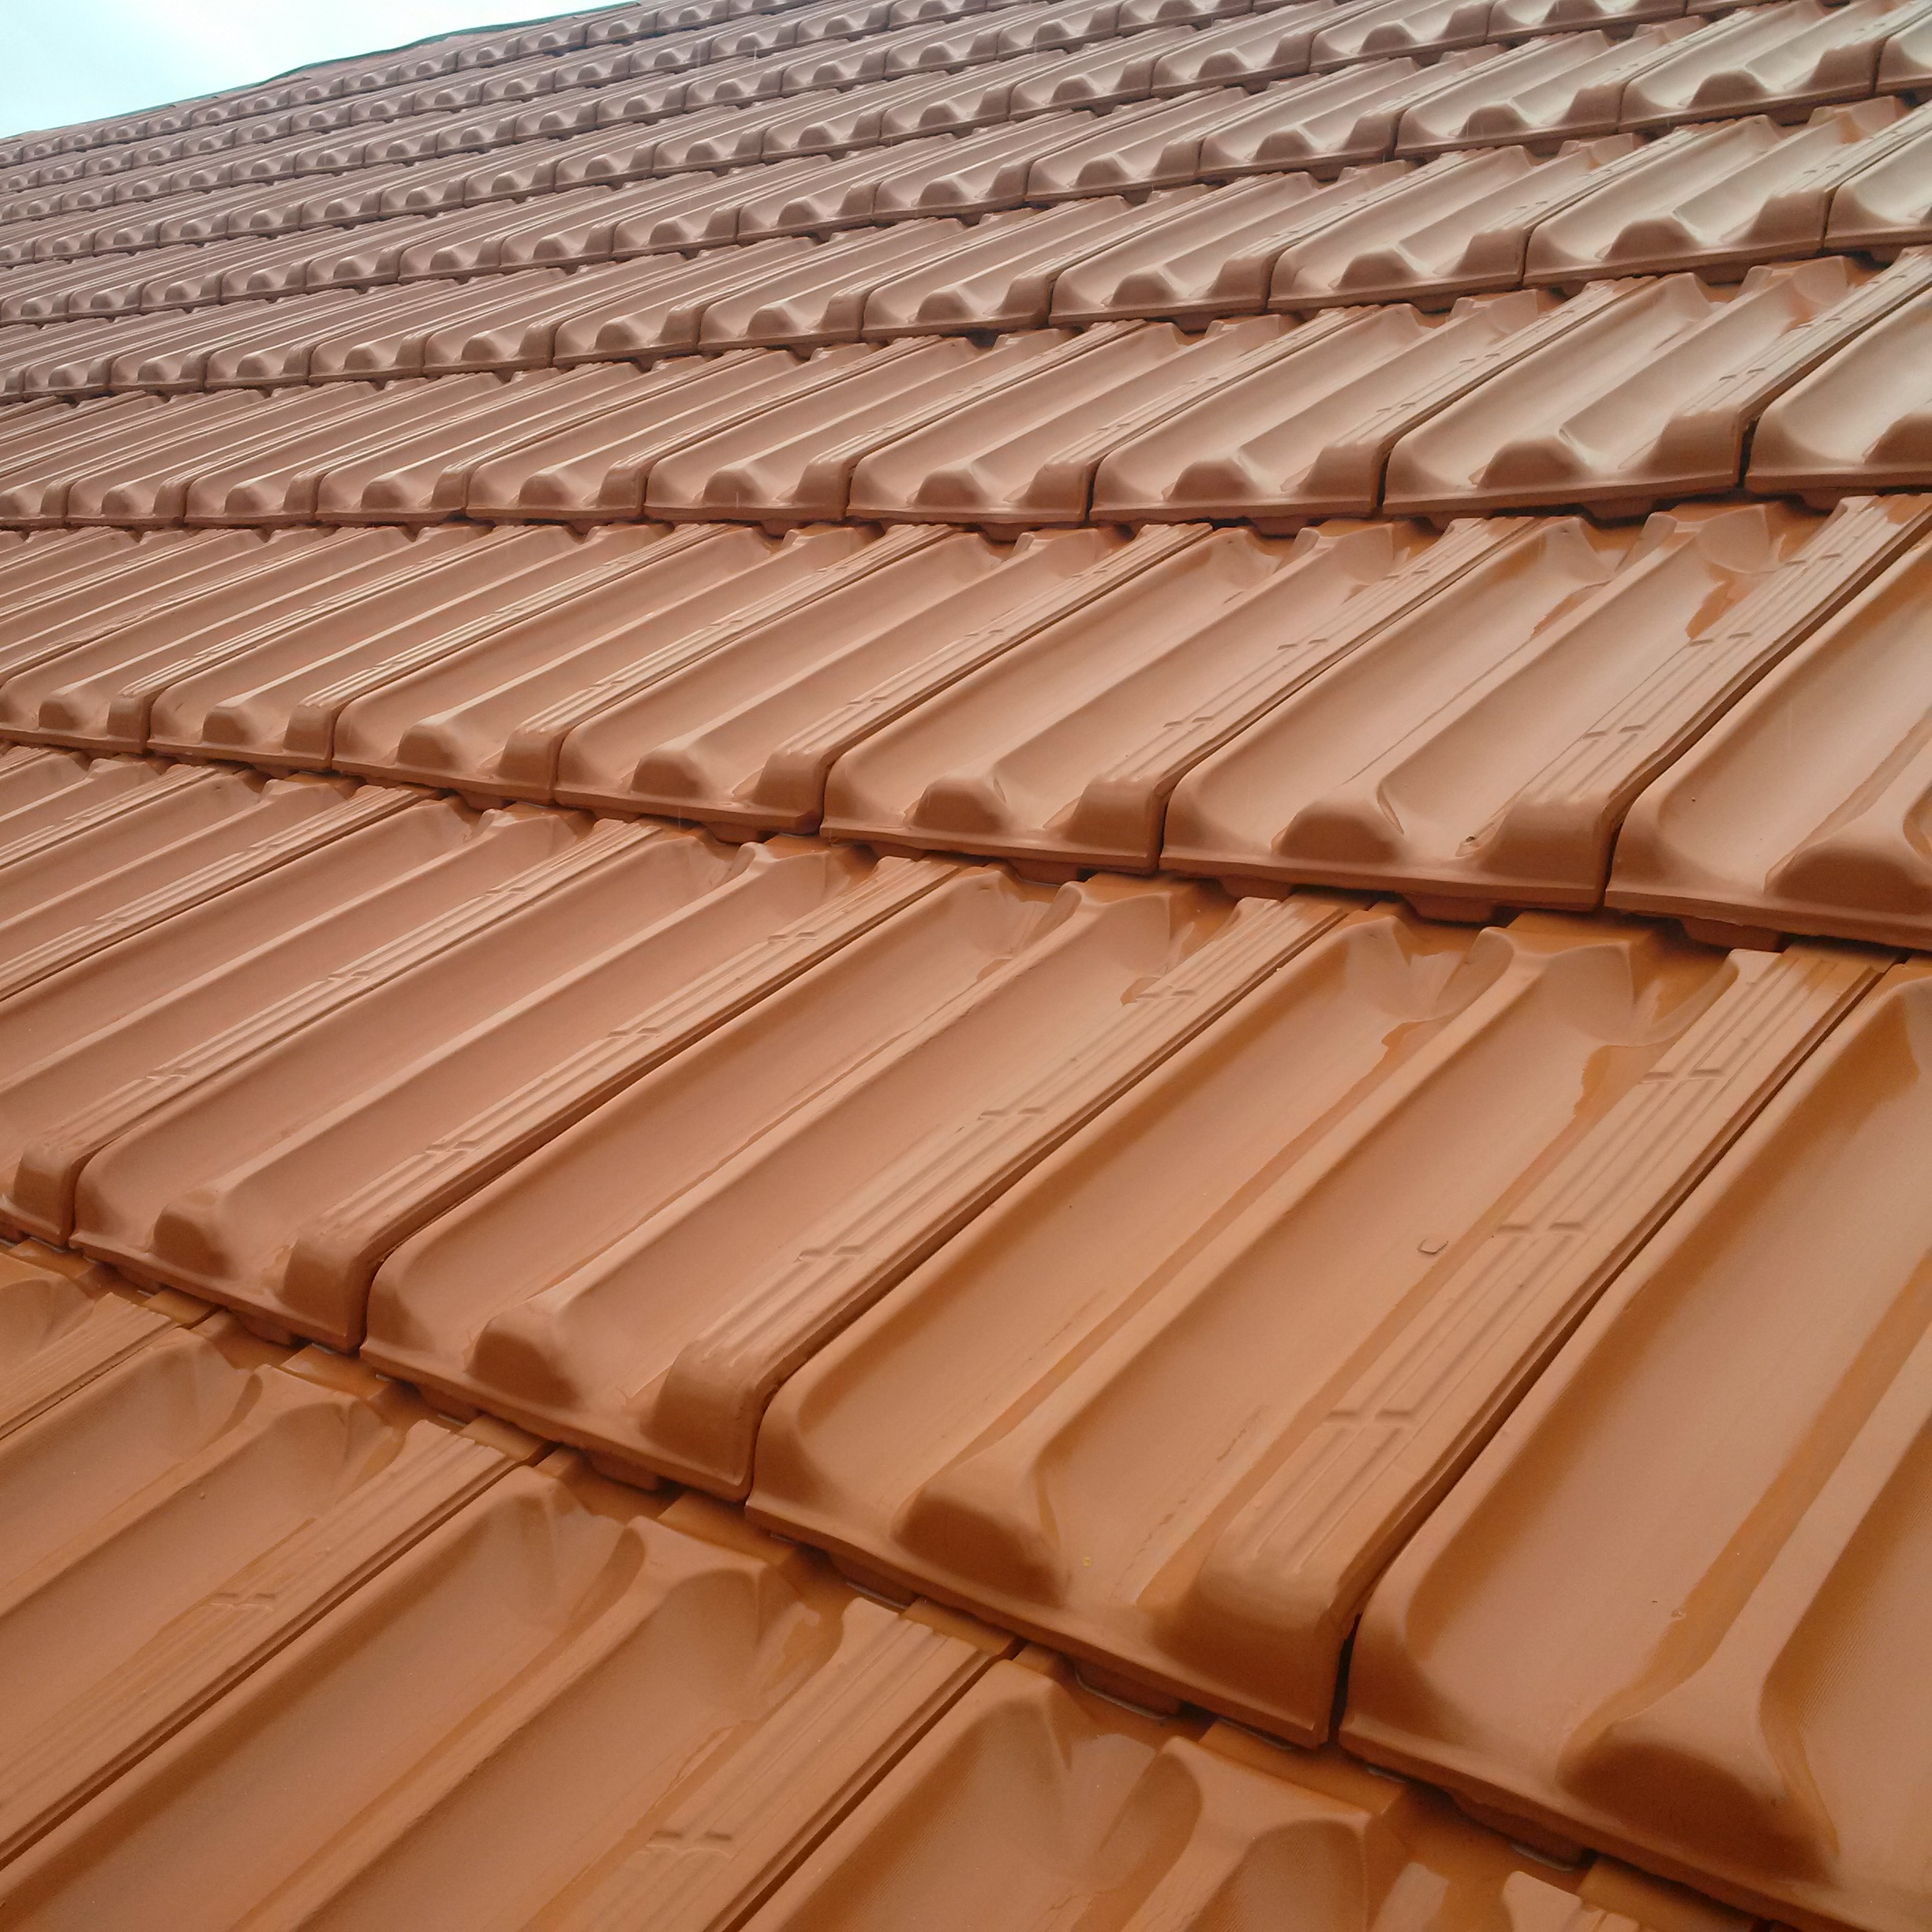 Stoneleaf Tiles - Low Pitch Roof Tiles 10 Degrees